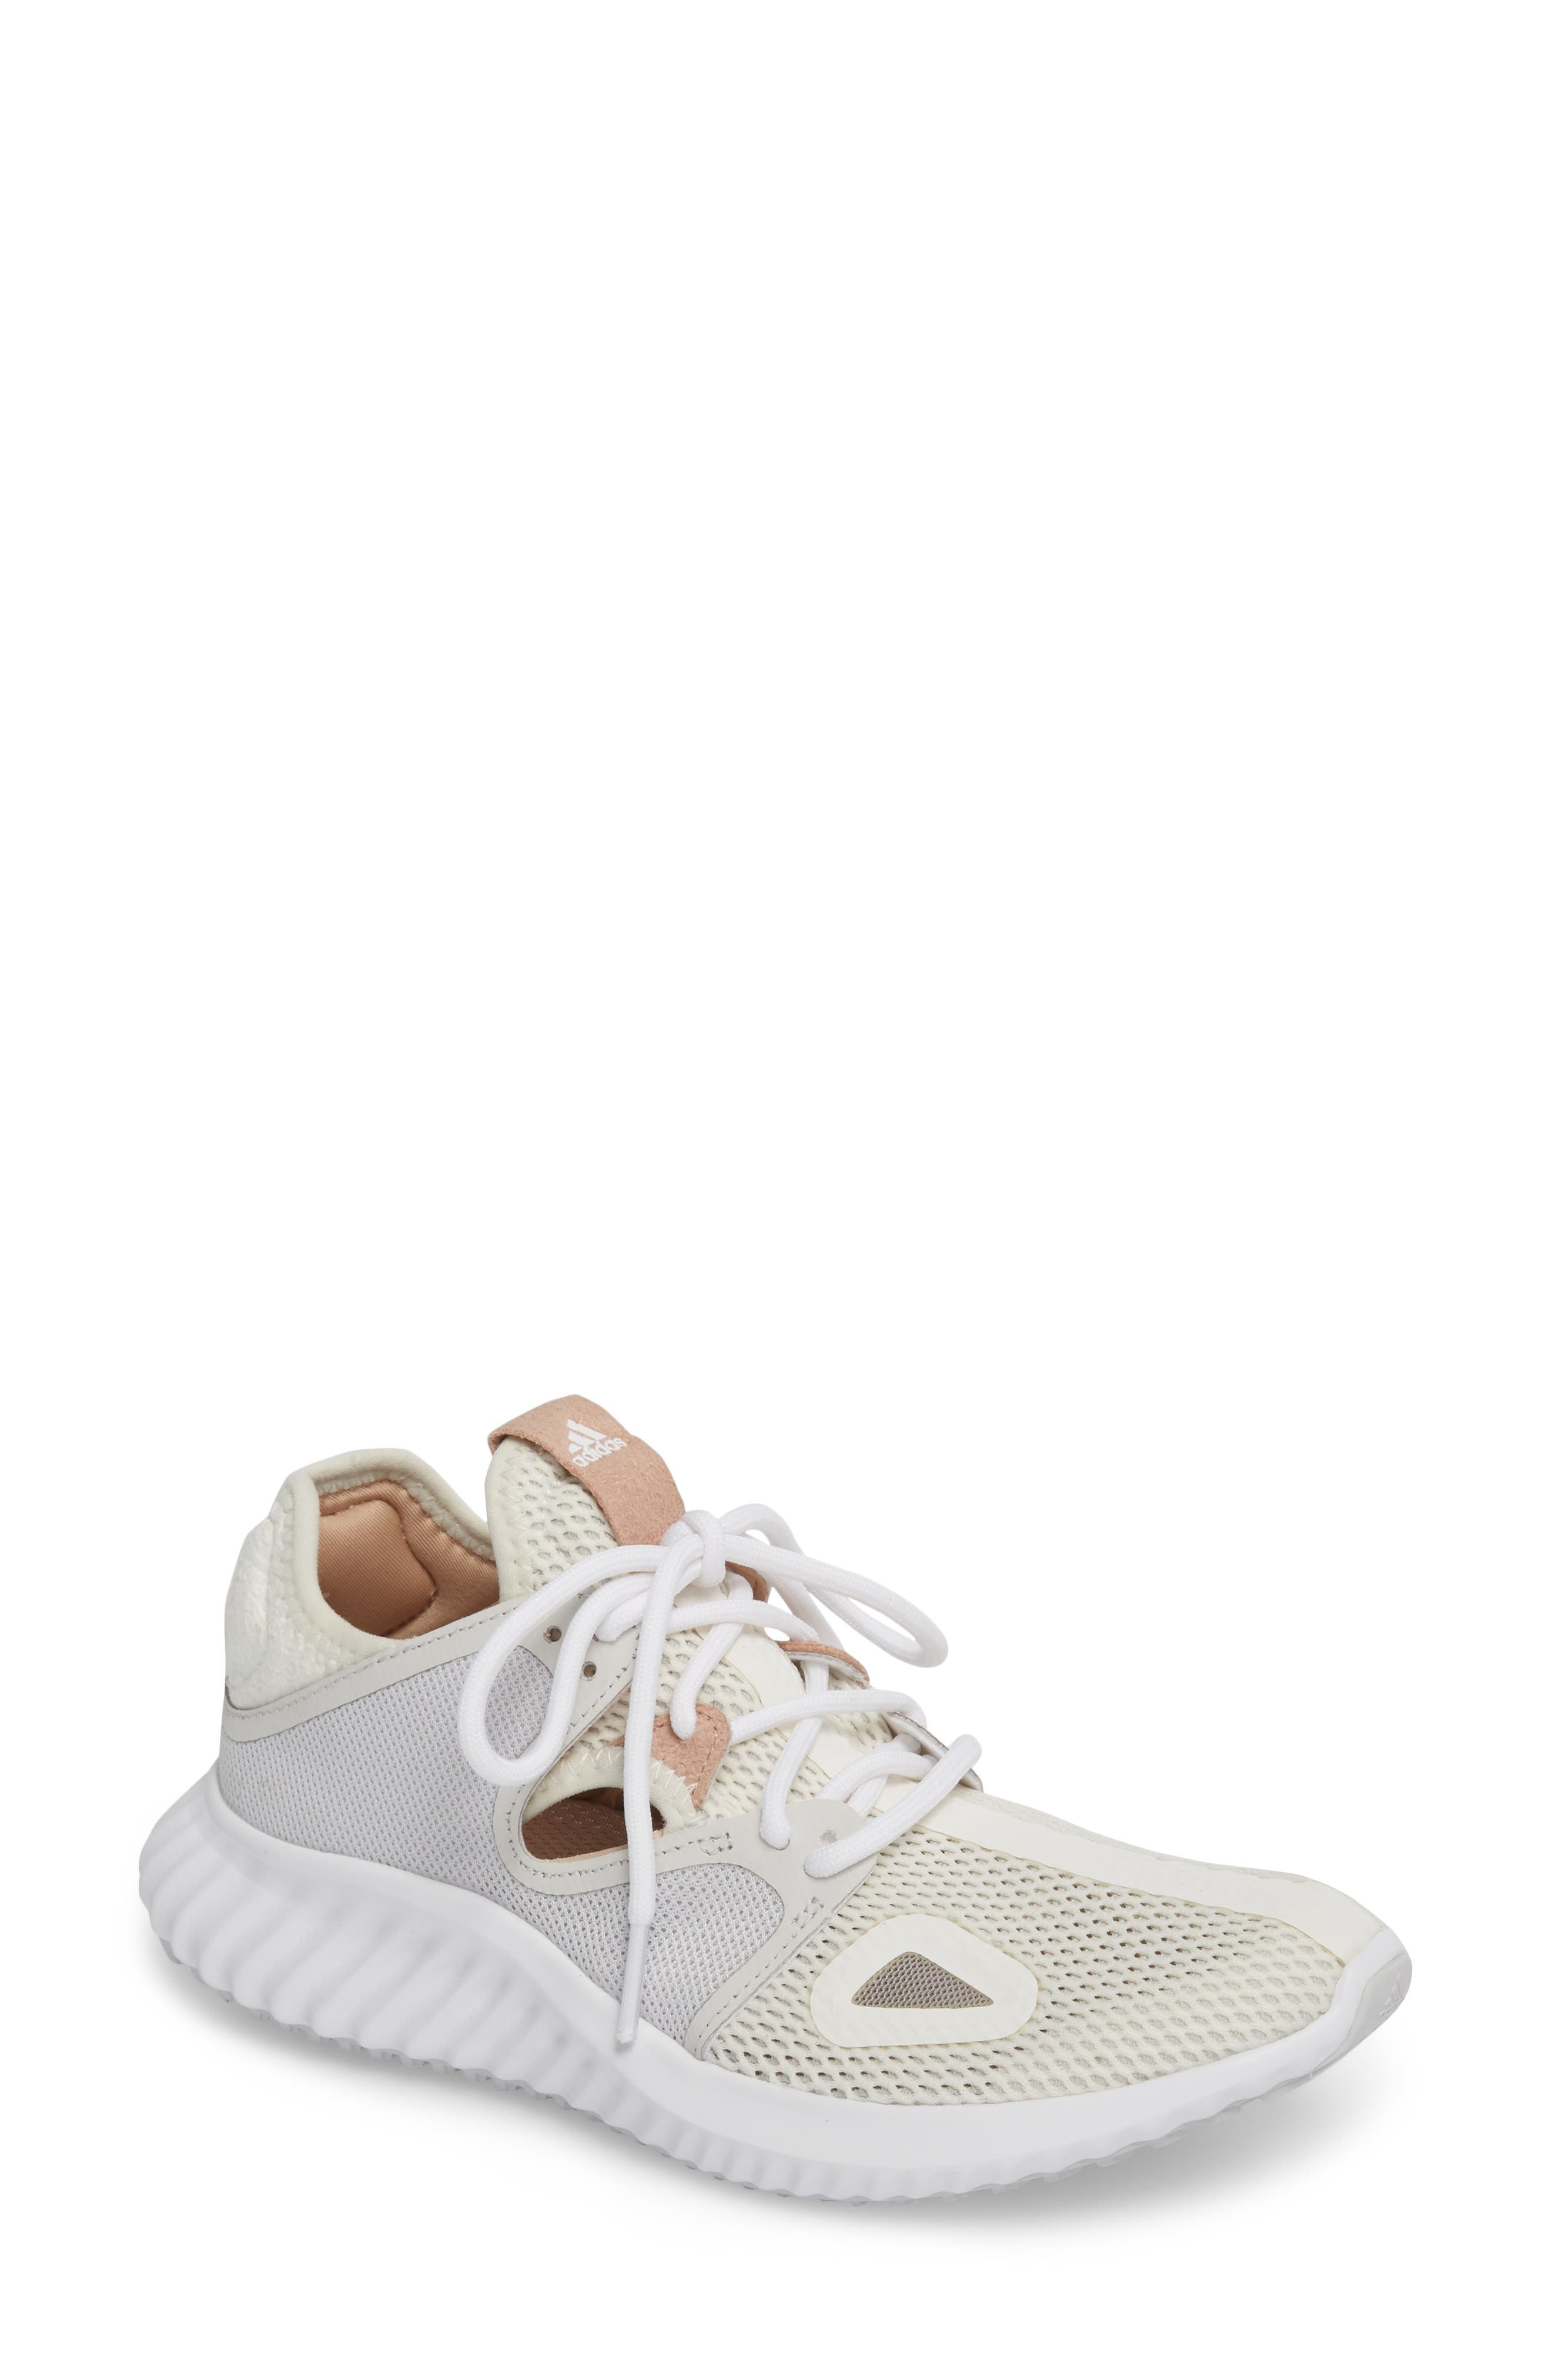 Run Lux Clima Running Shoe,                         Main,                         color, Off White / Grey